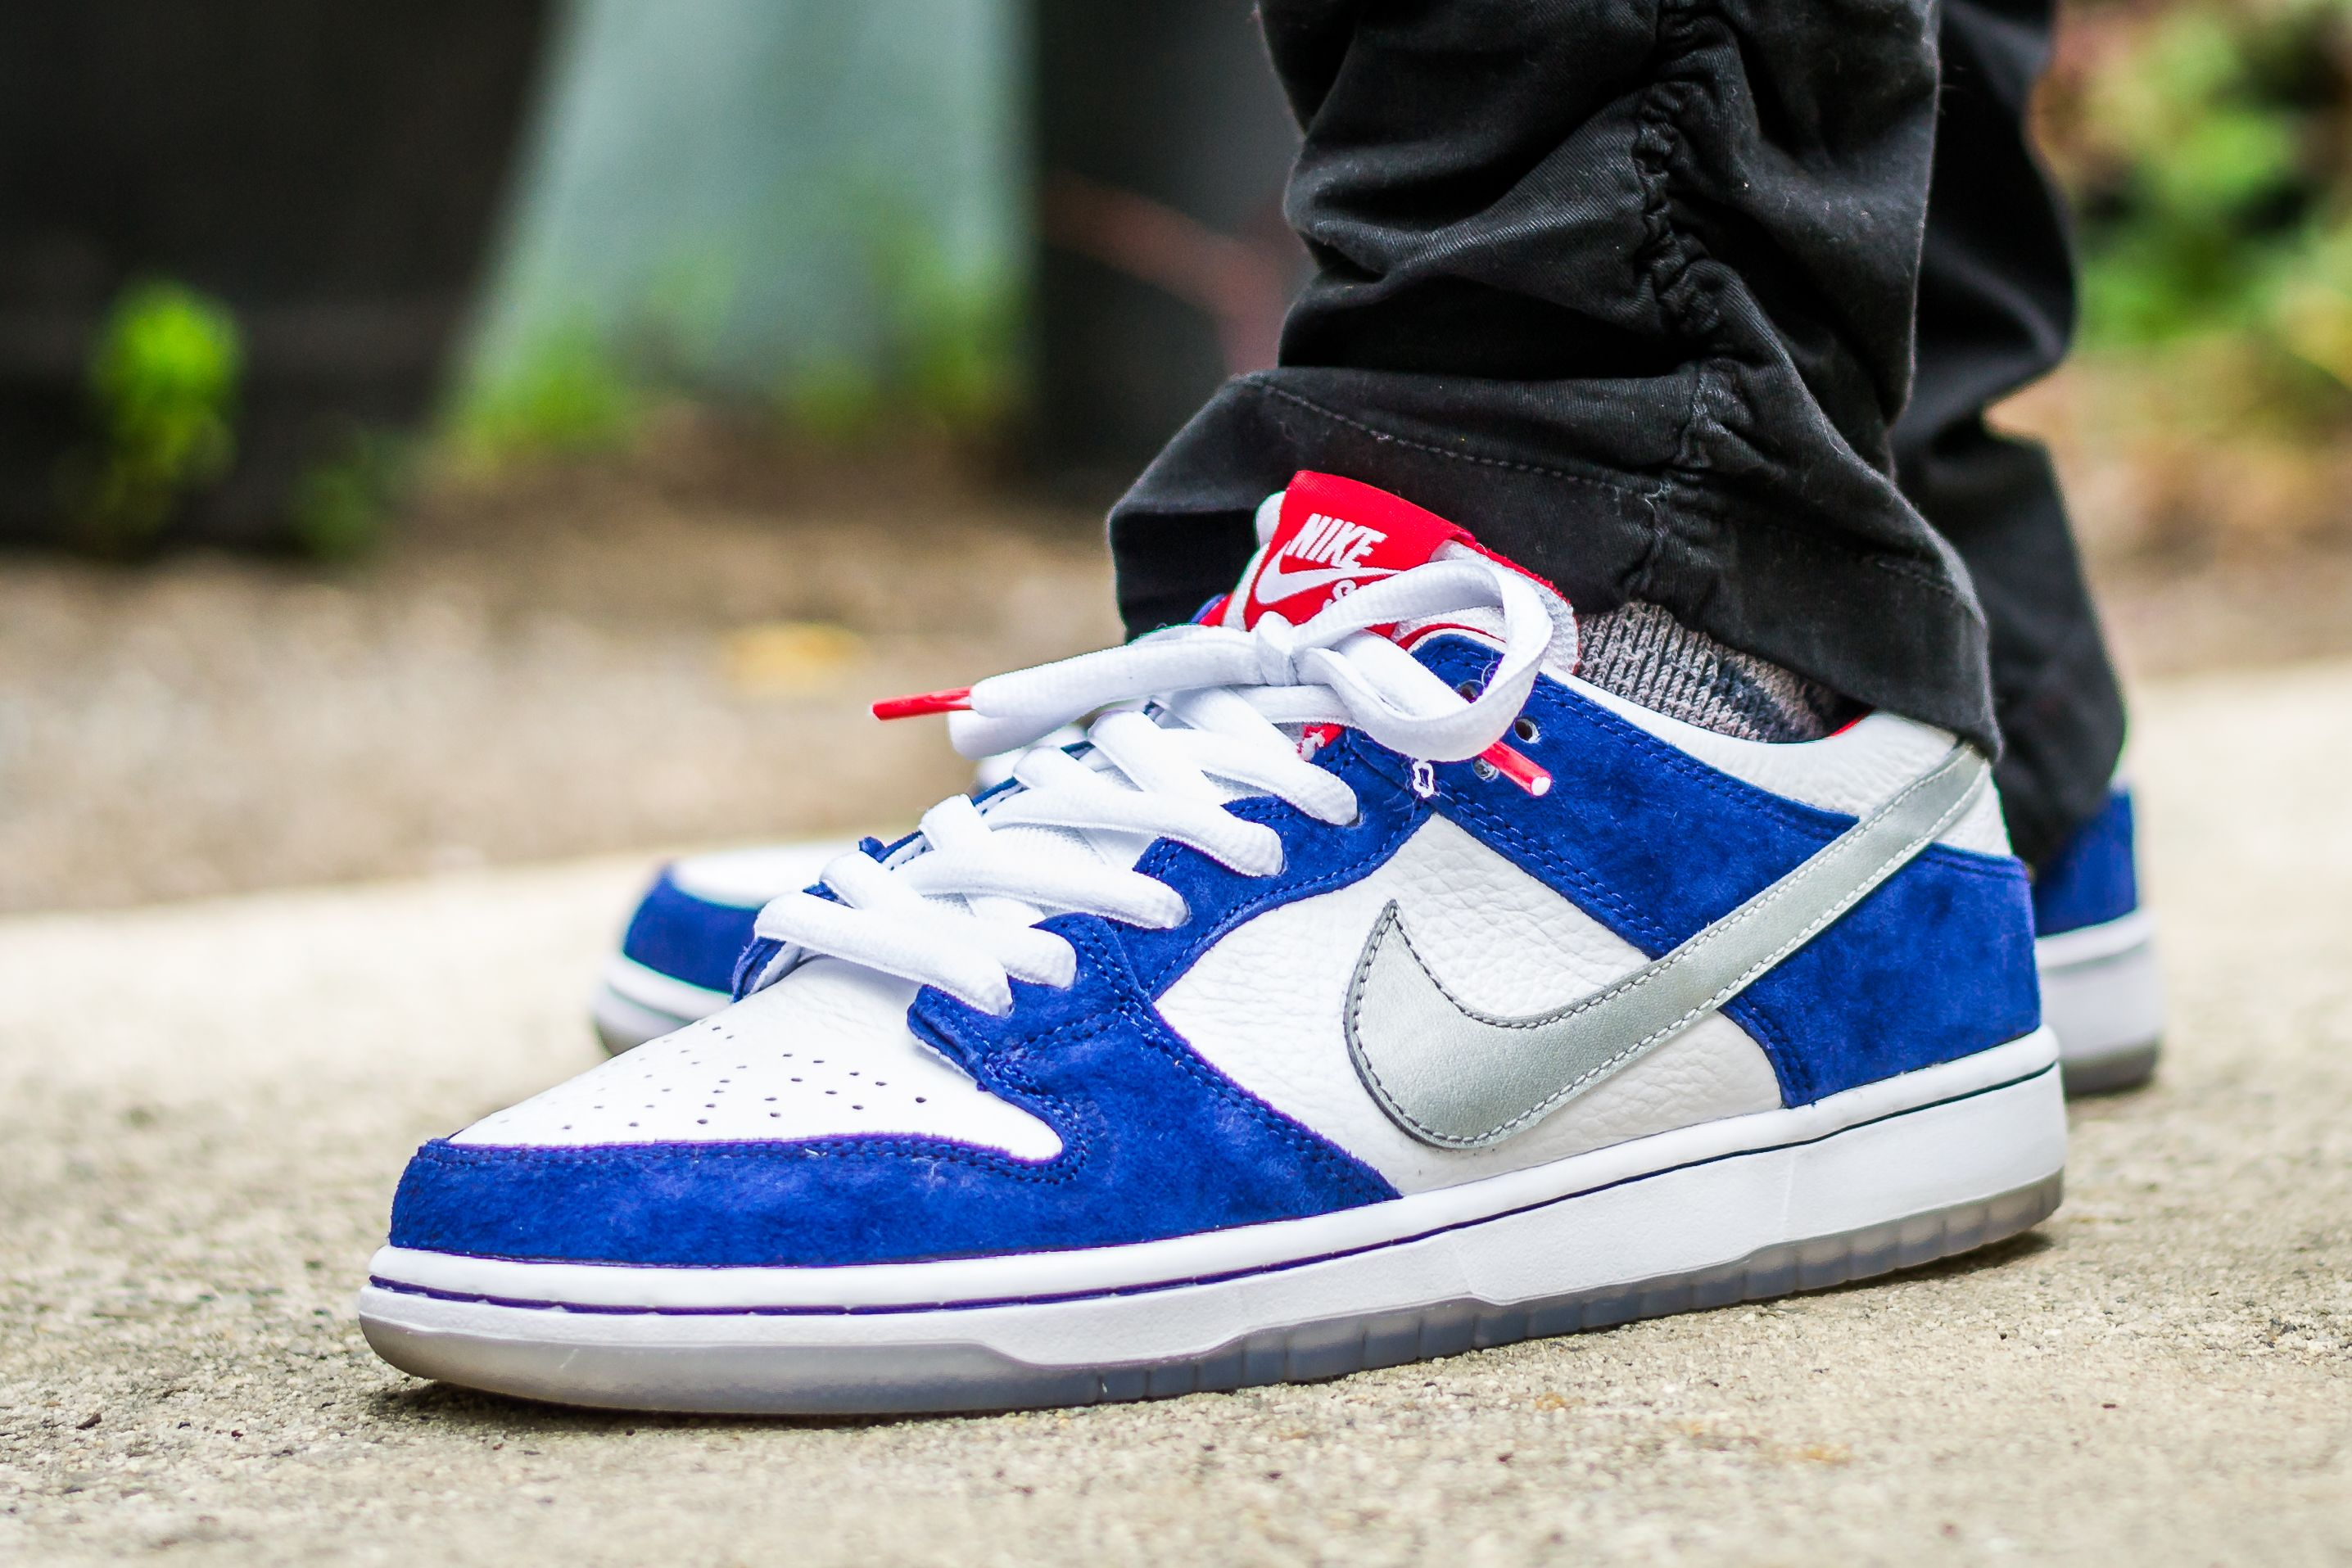 huge selection of 0a0dc e8c14 Click to see my video review of the Nike SB Dunk Low IW BMW and find out  where to buy a pair yourself